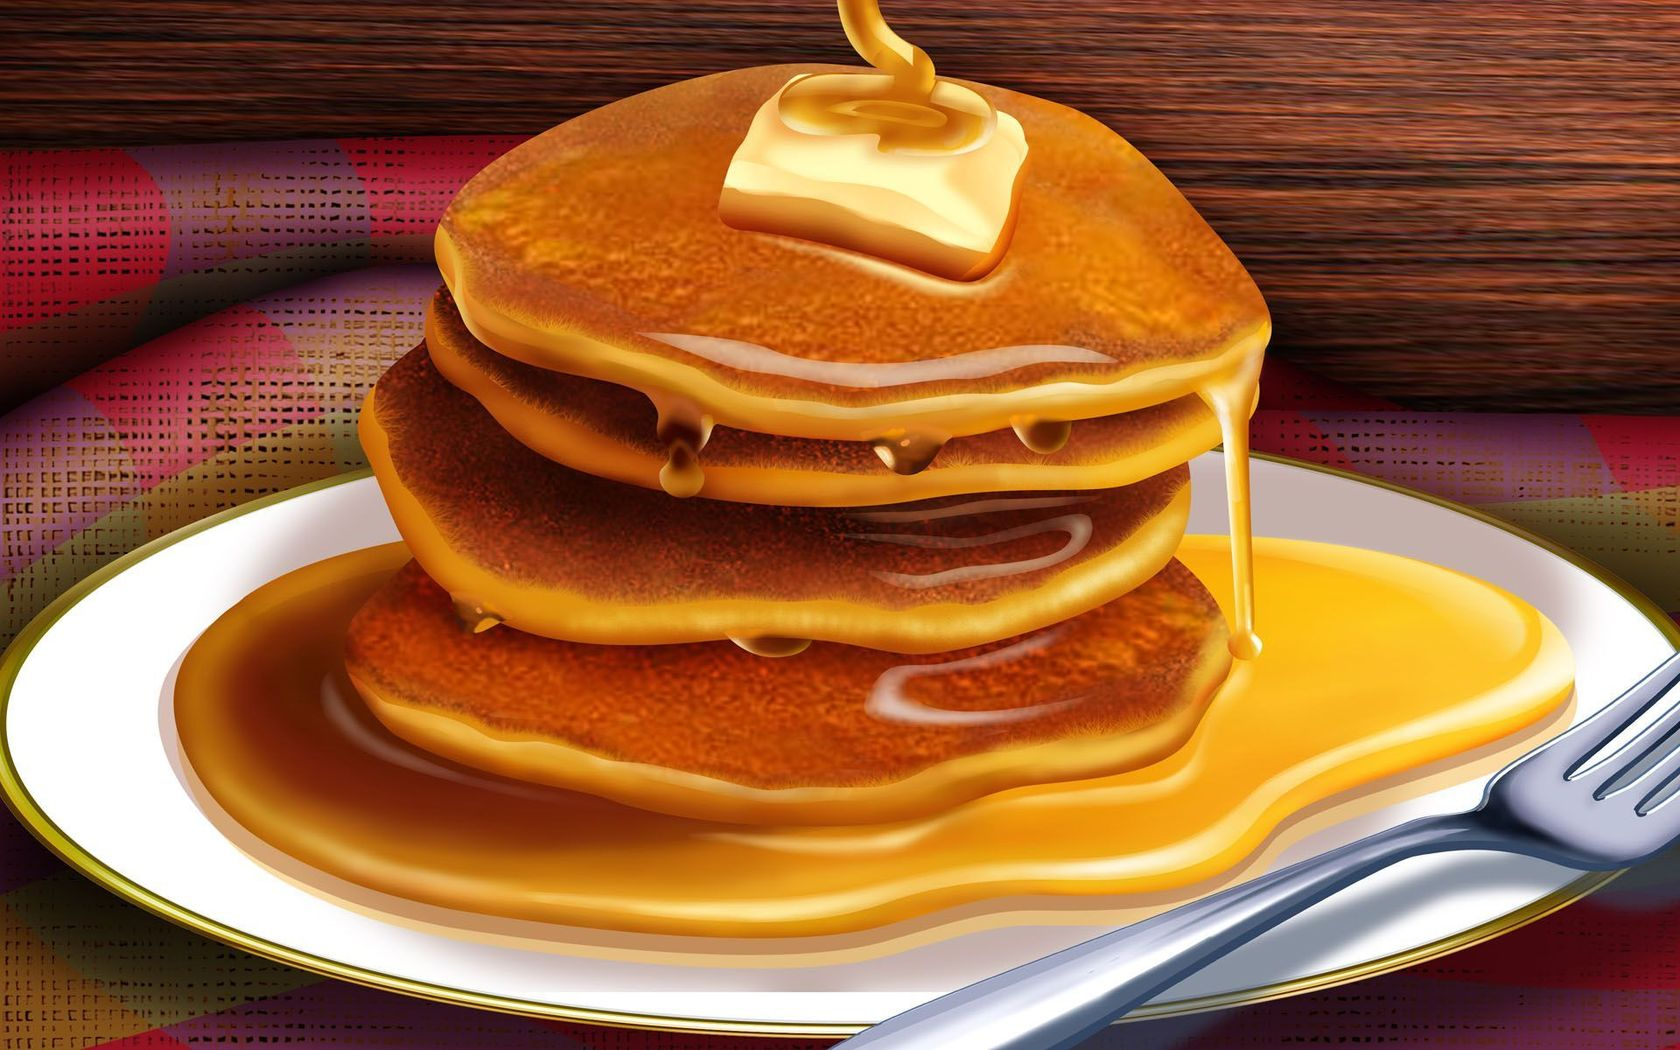 Pancakes with syrup clipart wallpaper image 40084 1680x1050